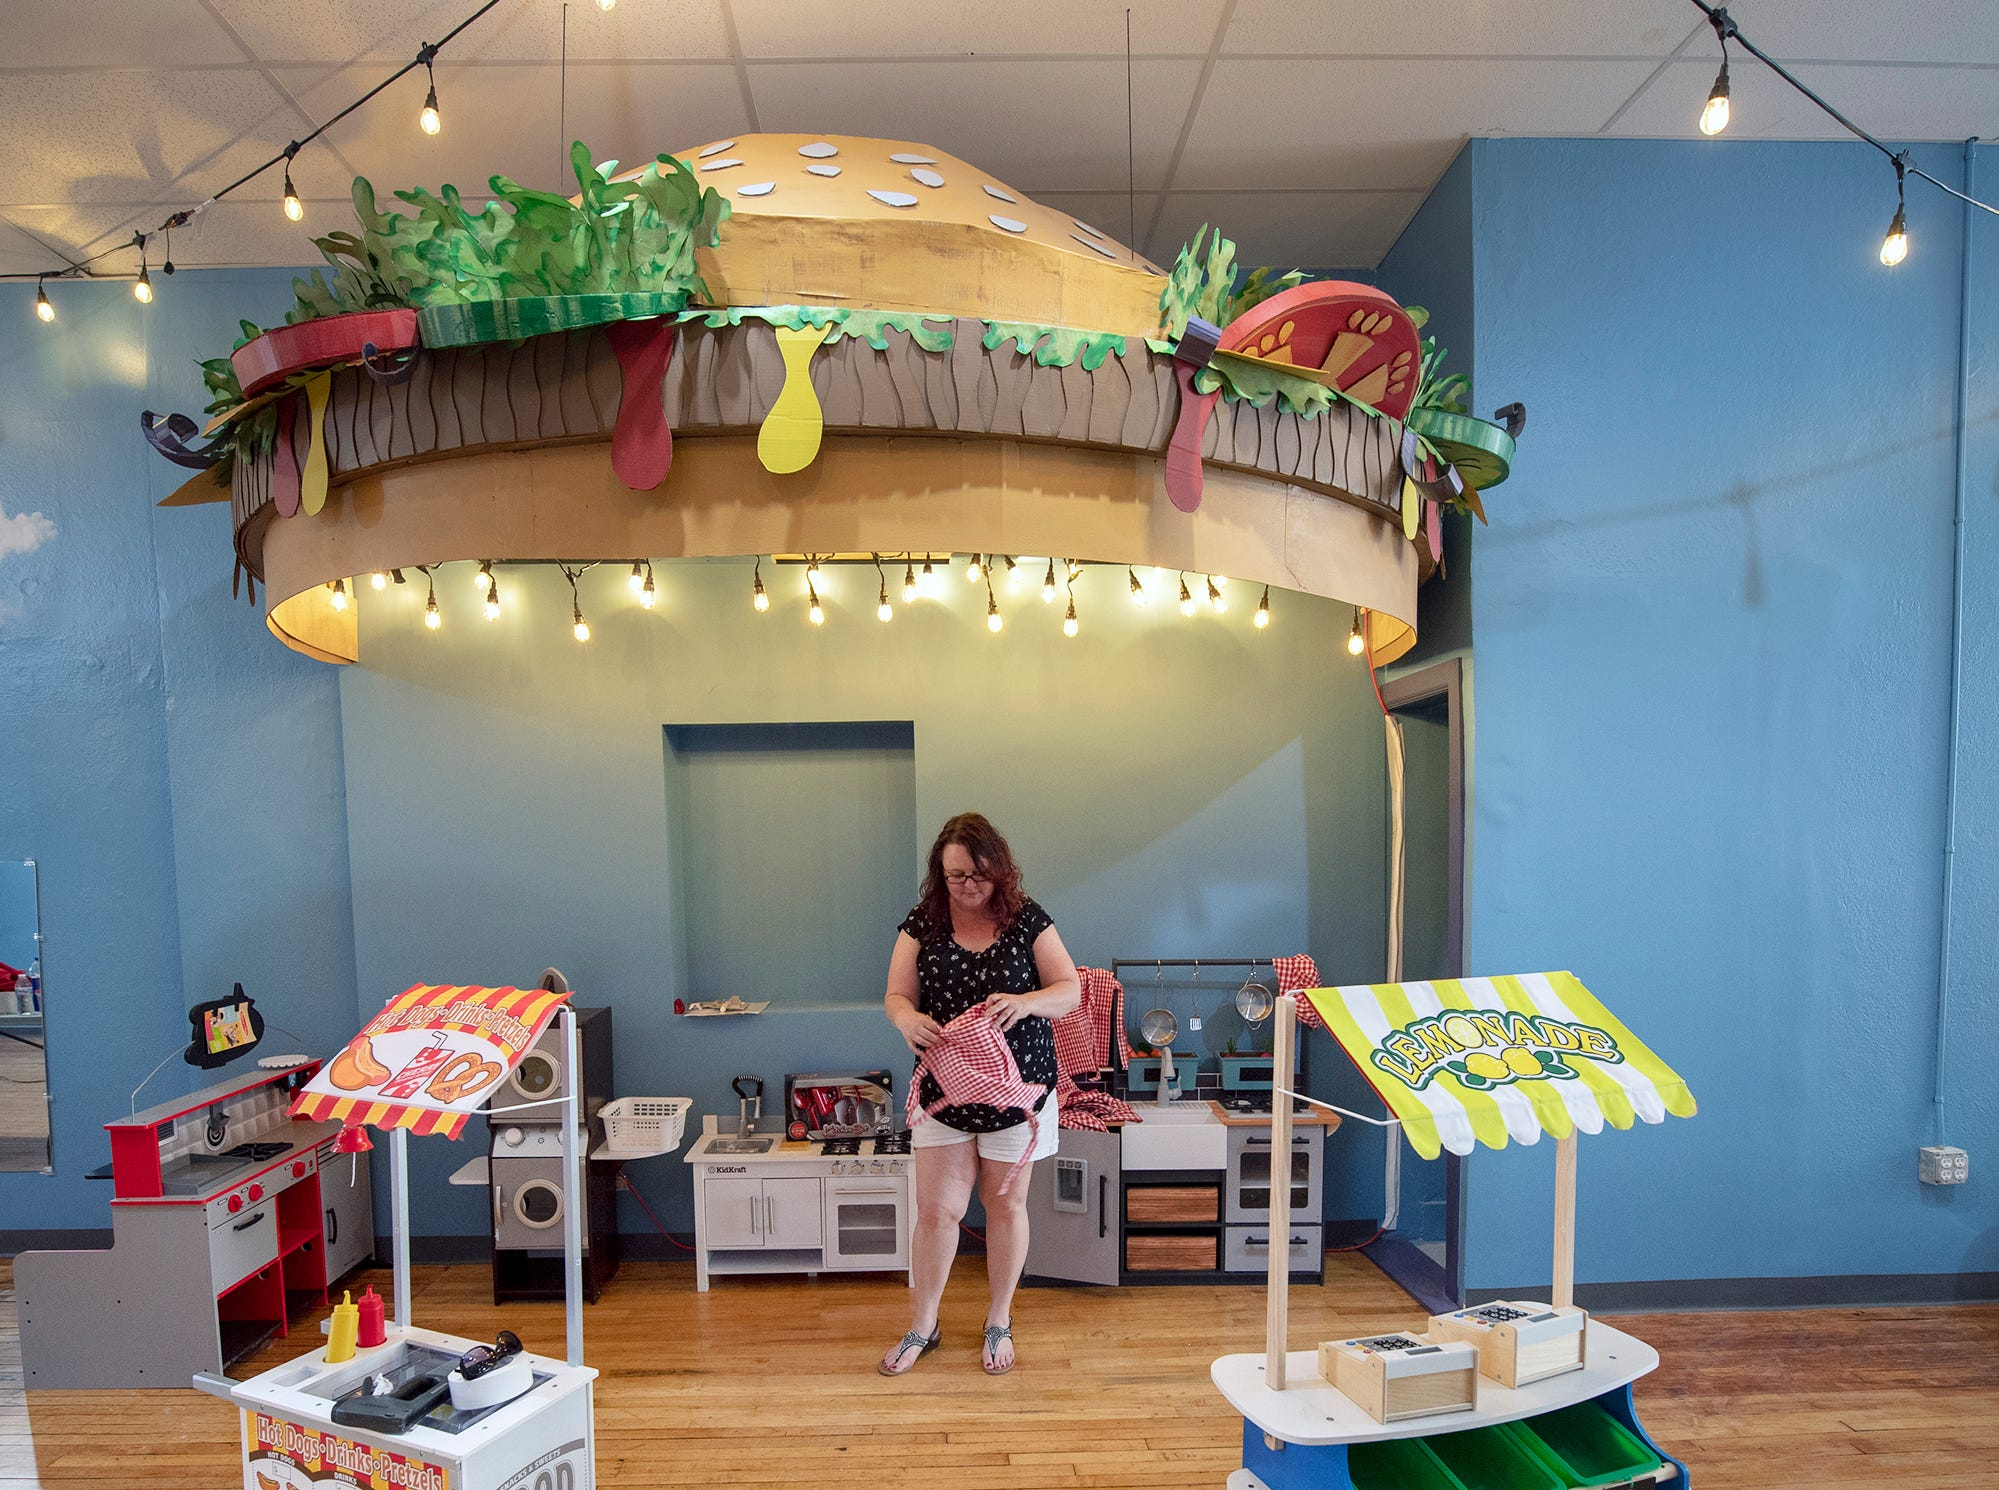 Jen Swanner folds an apron at the Diner and interactive play station at The Curious Little Playhouse.